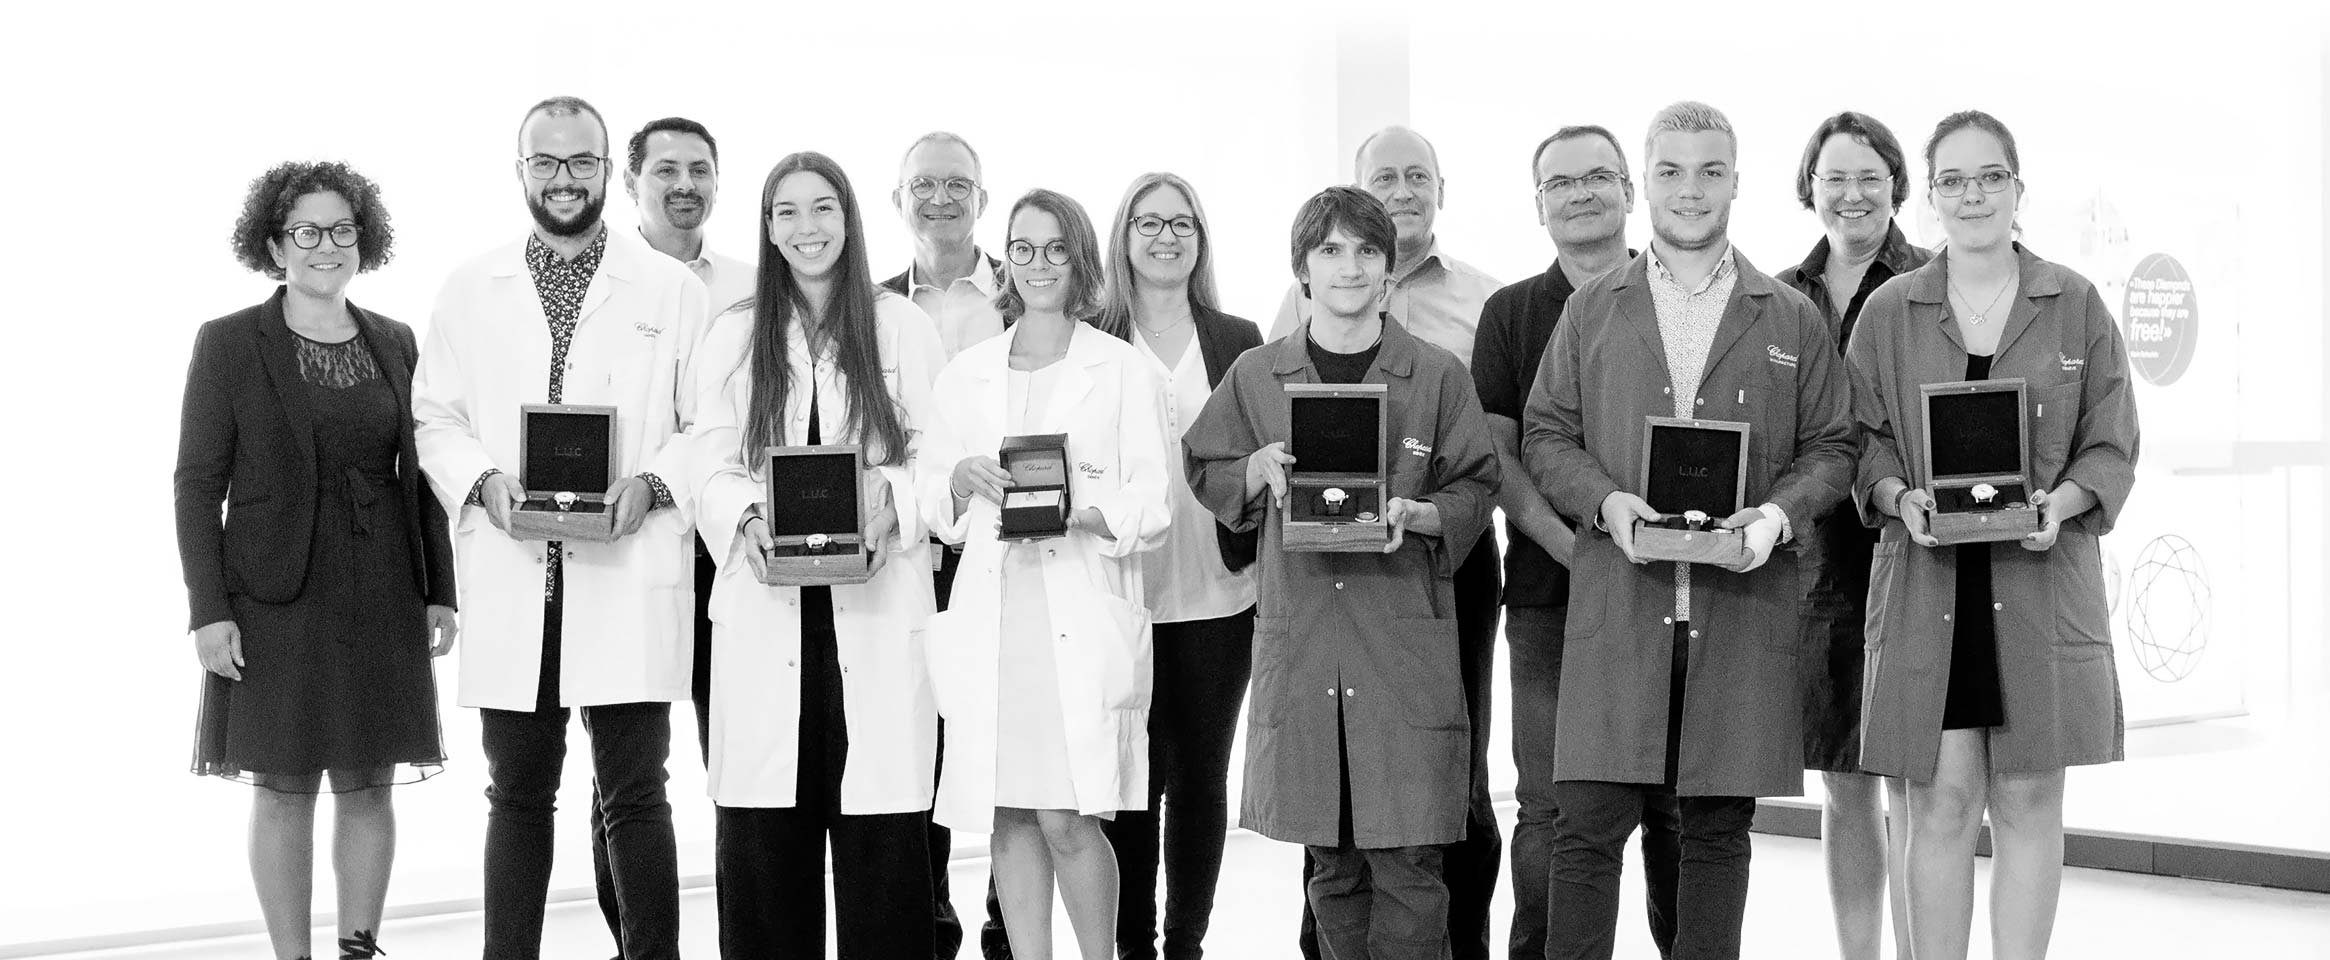 13 employees of Chopard, some wearing blouses and holding Chopard watches in their boxes in their hands.